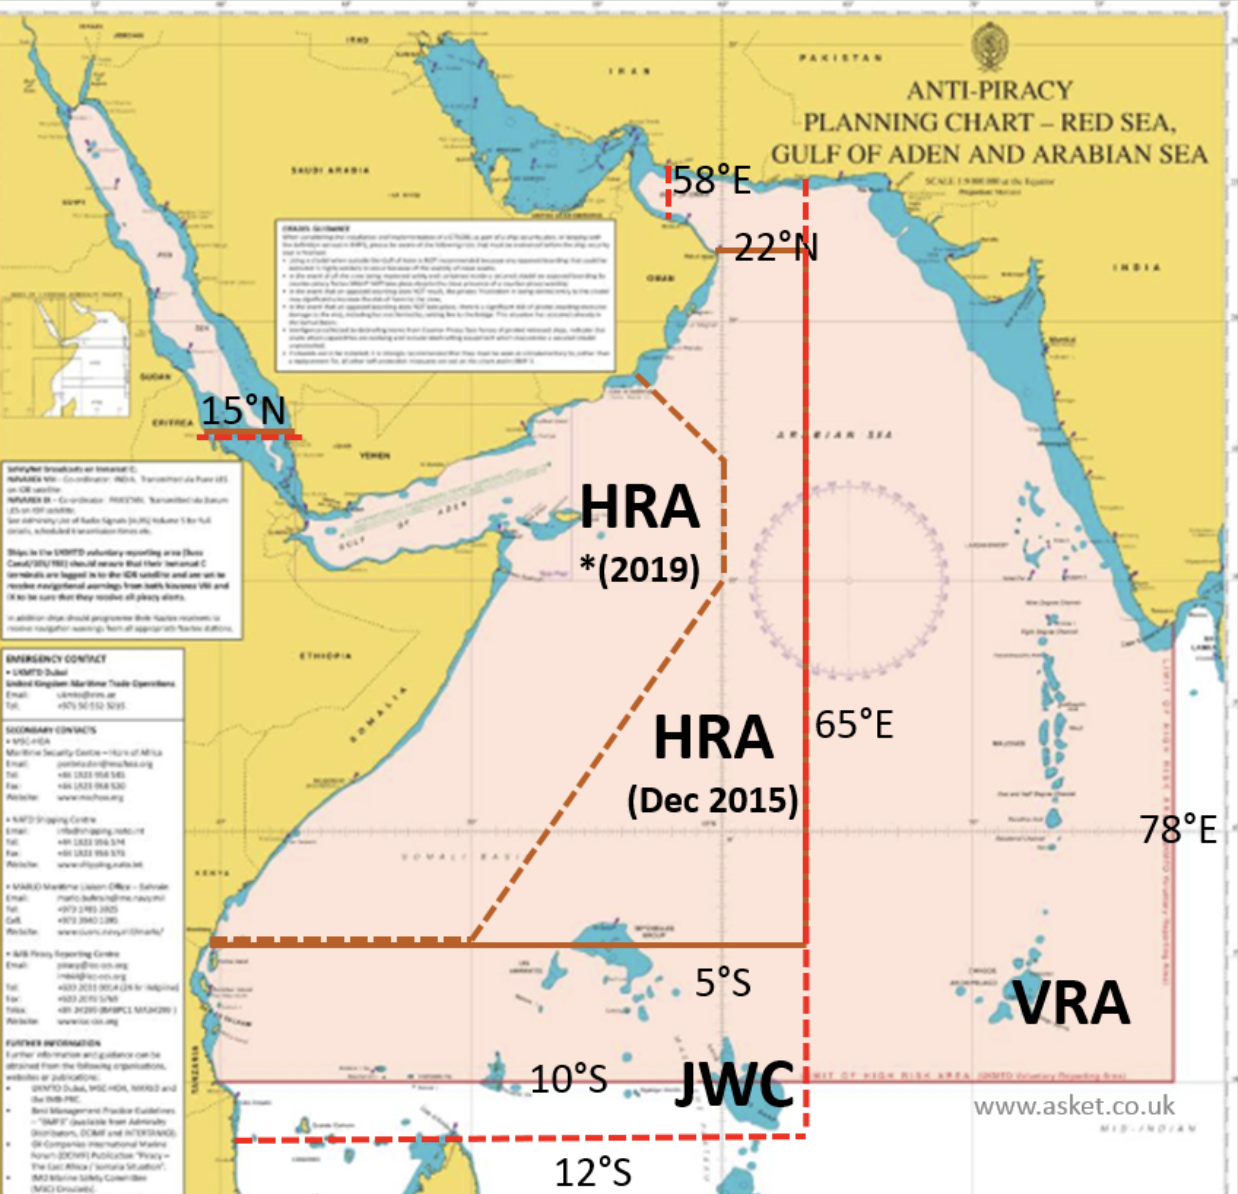 Boundaries for High Risk Area (HRA) in the Indian Ocean